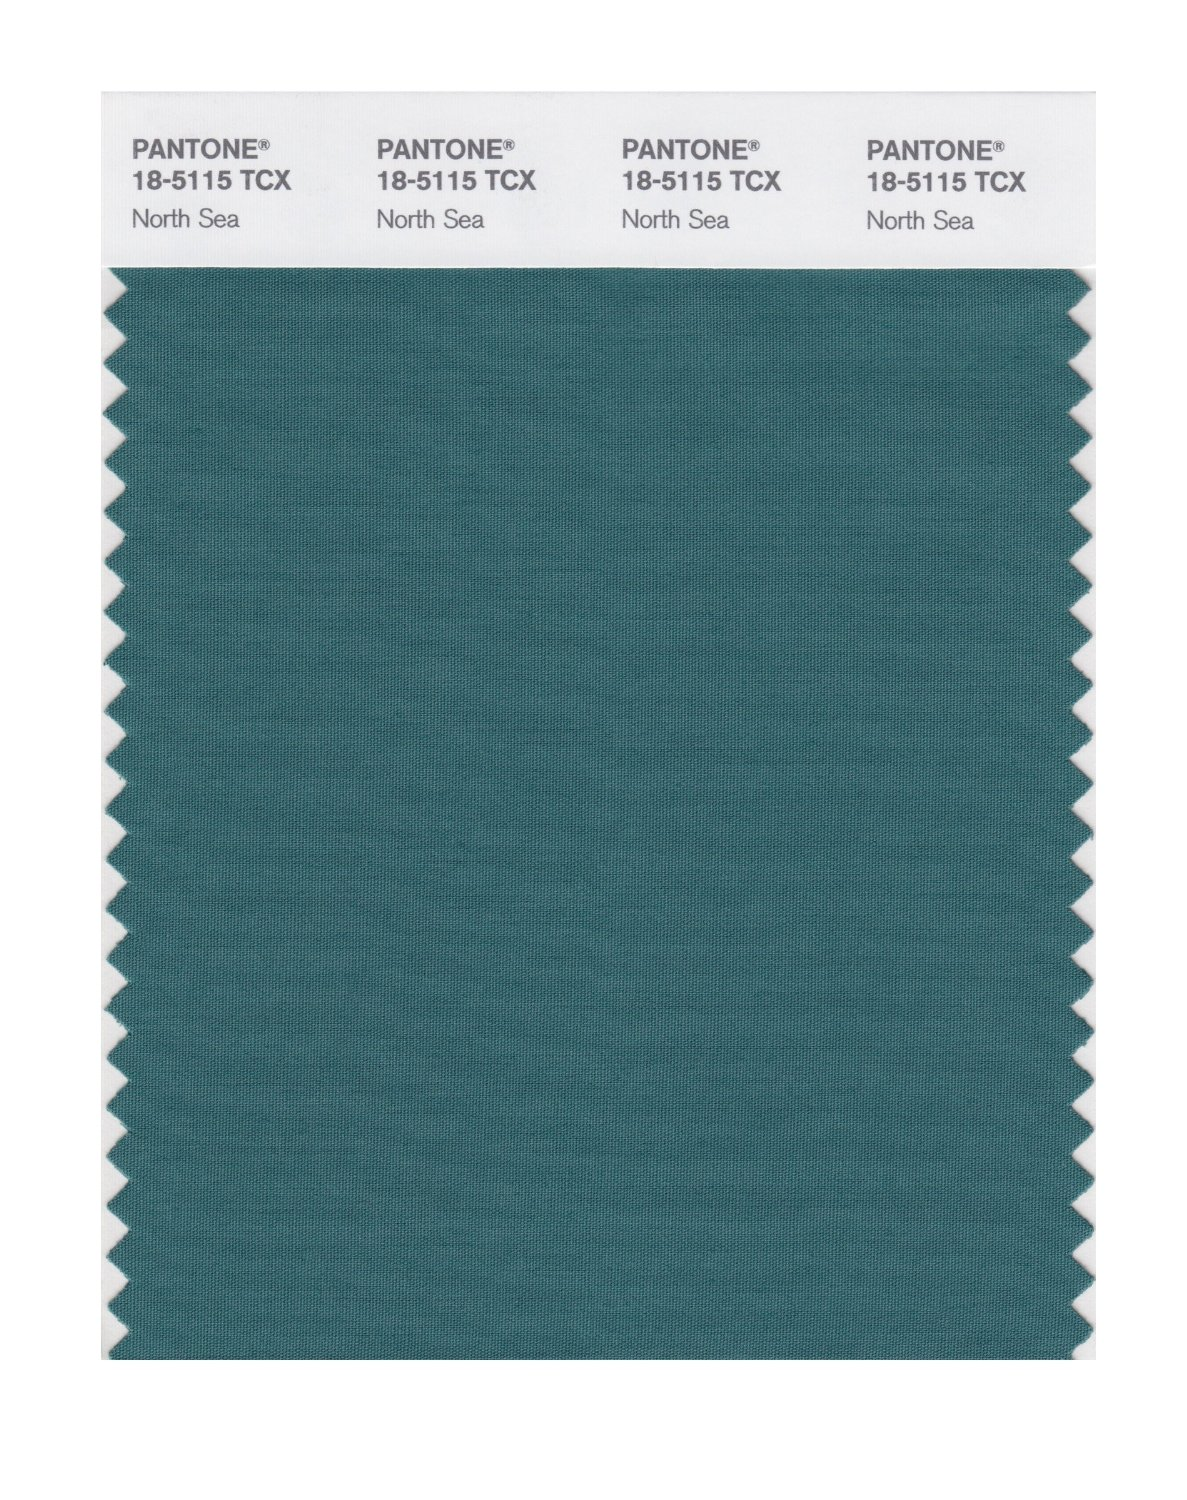 Pantone Smart Swatch 18-5115 North Sea